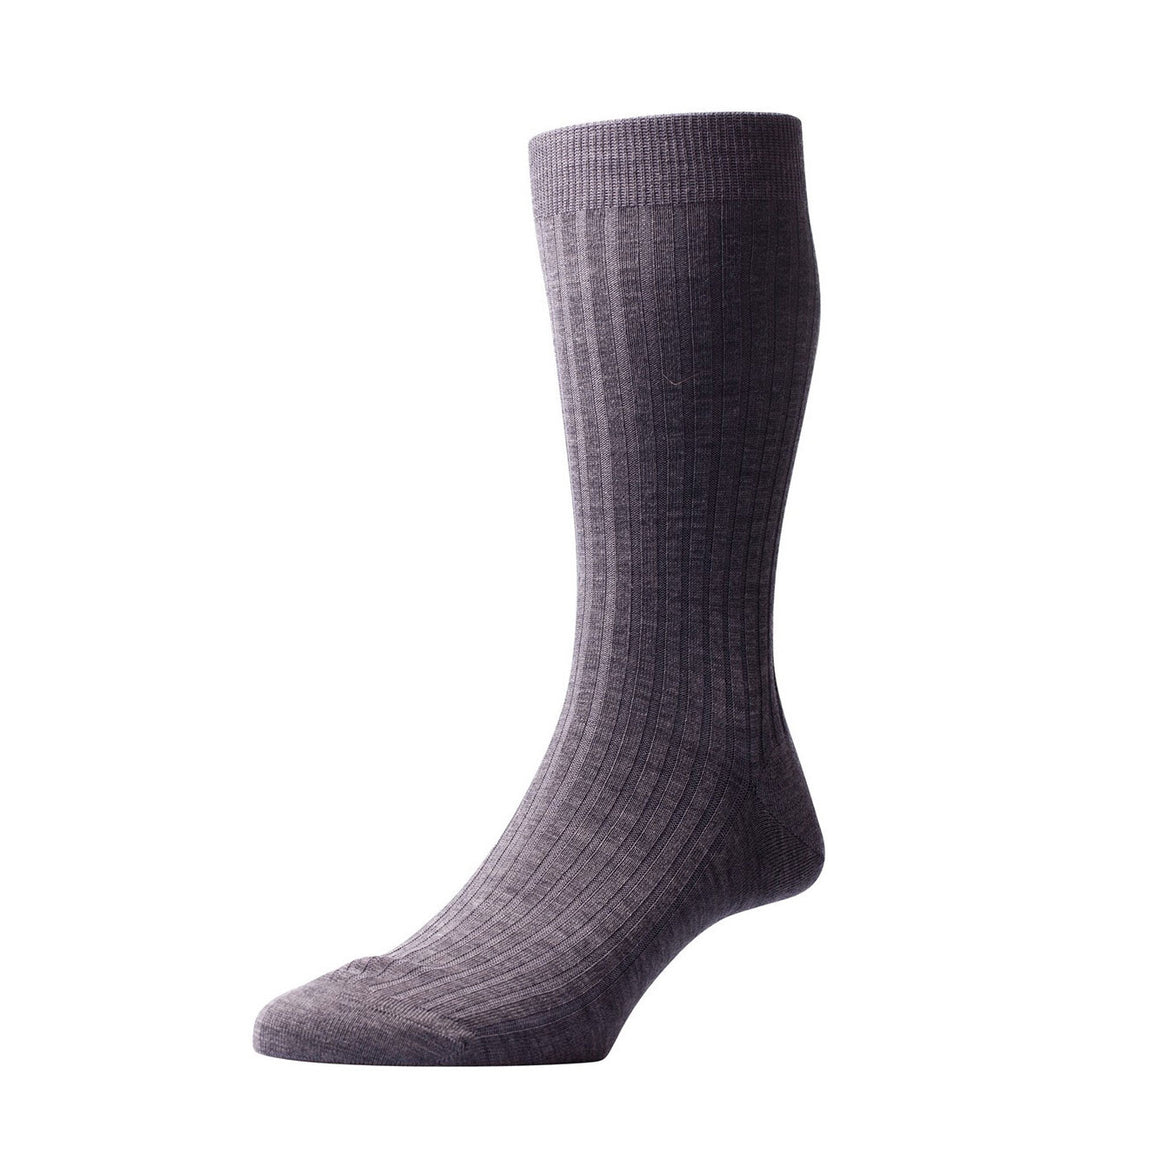 Pantherella - Laburnum wool (Charcoal) - Brund